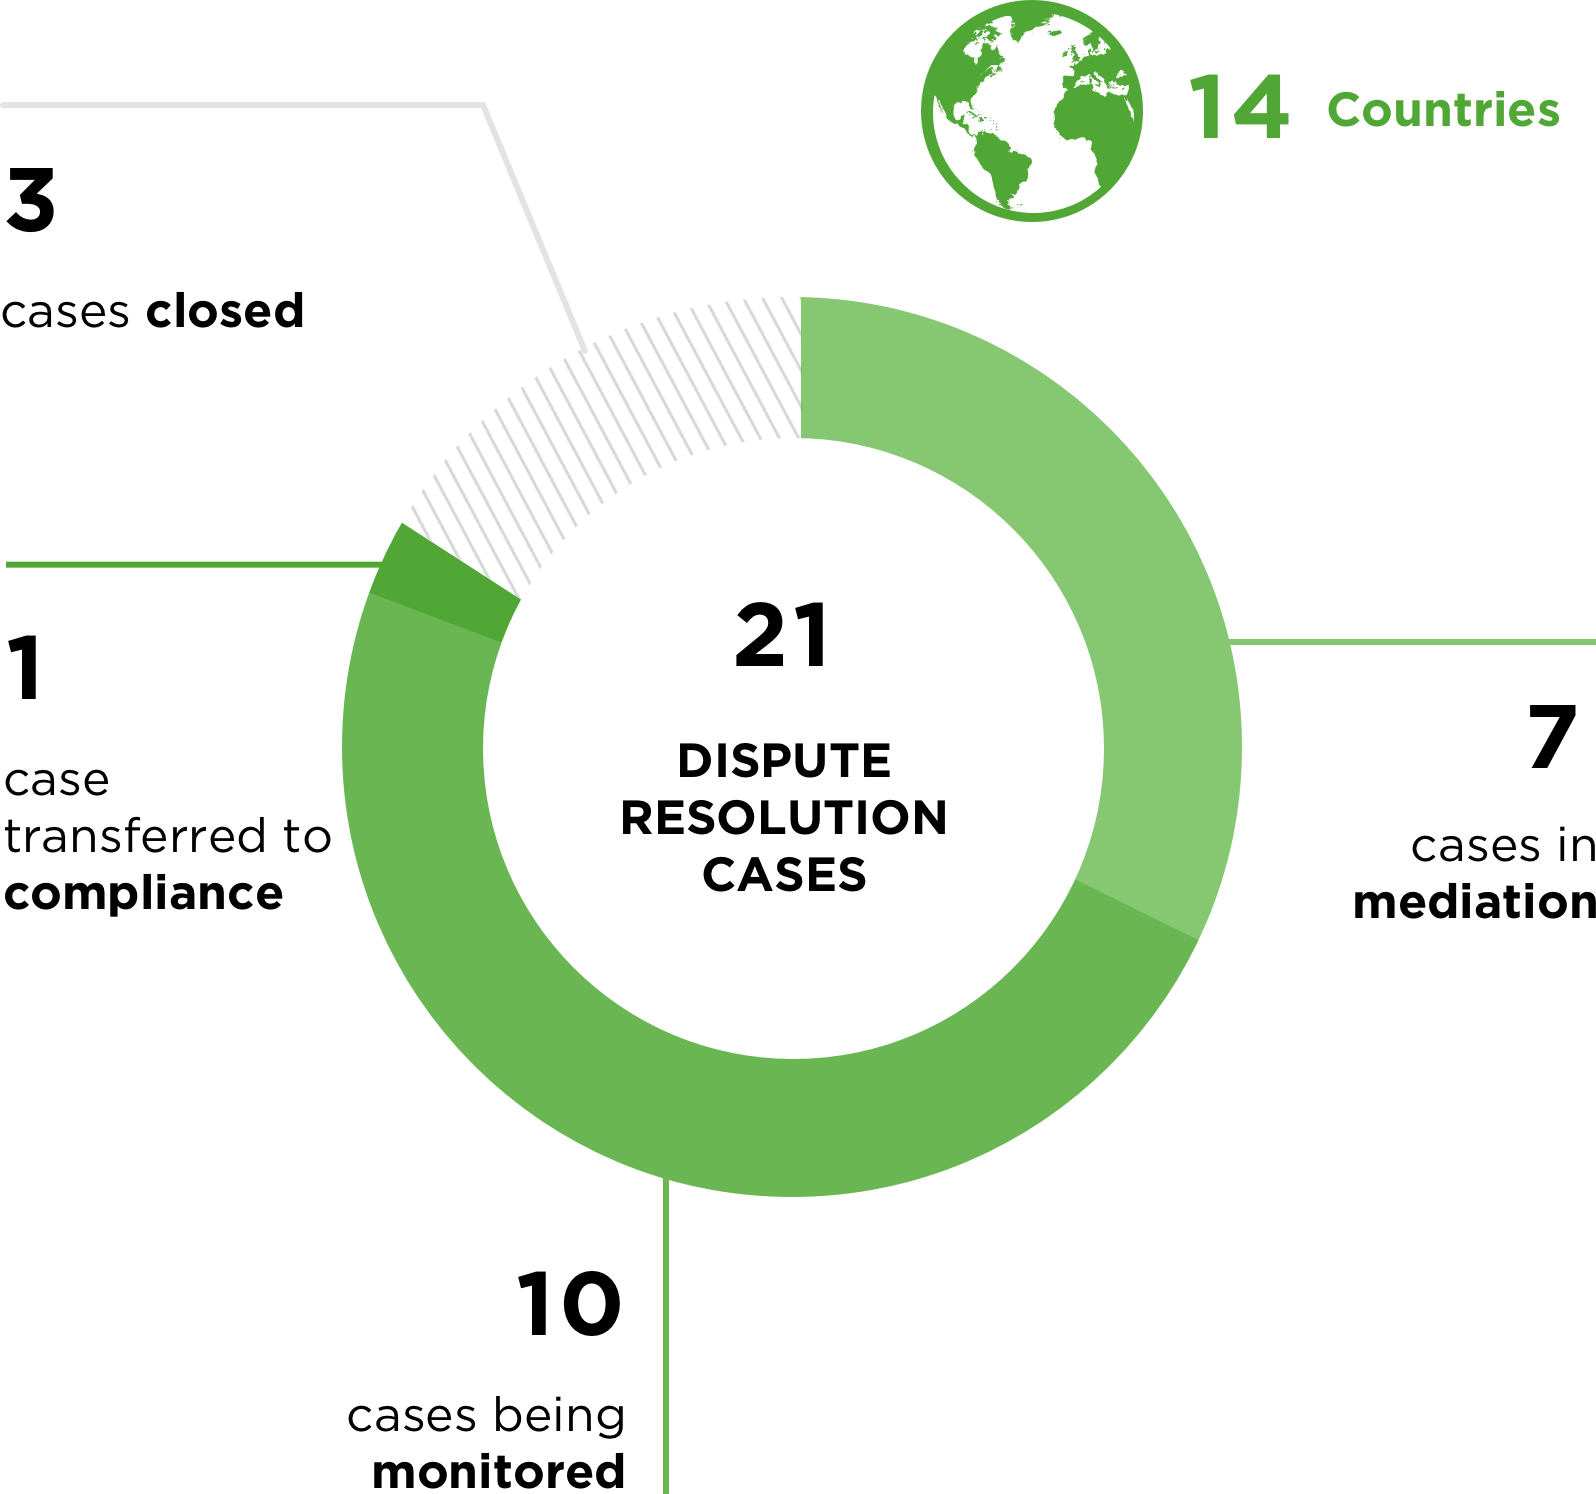 21 Dispute Resolution Cases; 15 Countries; 10 Cases active in Monitoring; 7 Cases active in Mediation; 3 Cases Closed; 1 Case transferred to Compliance